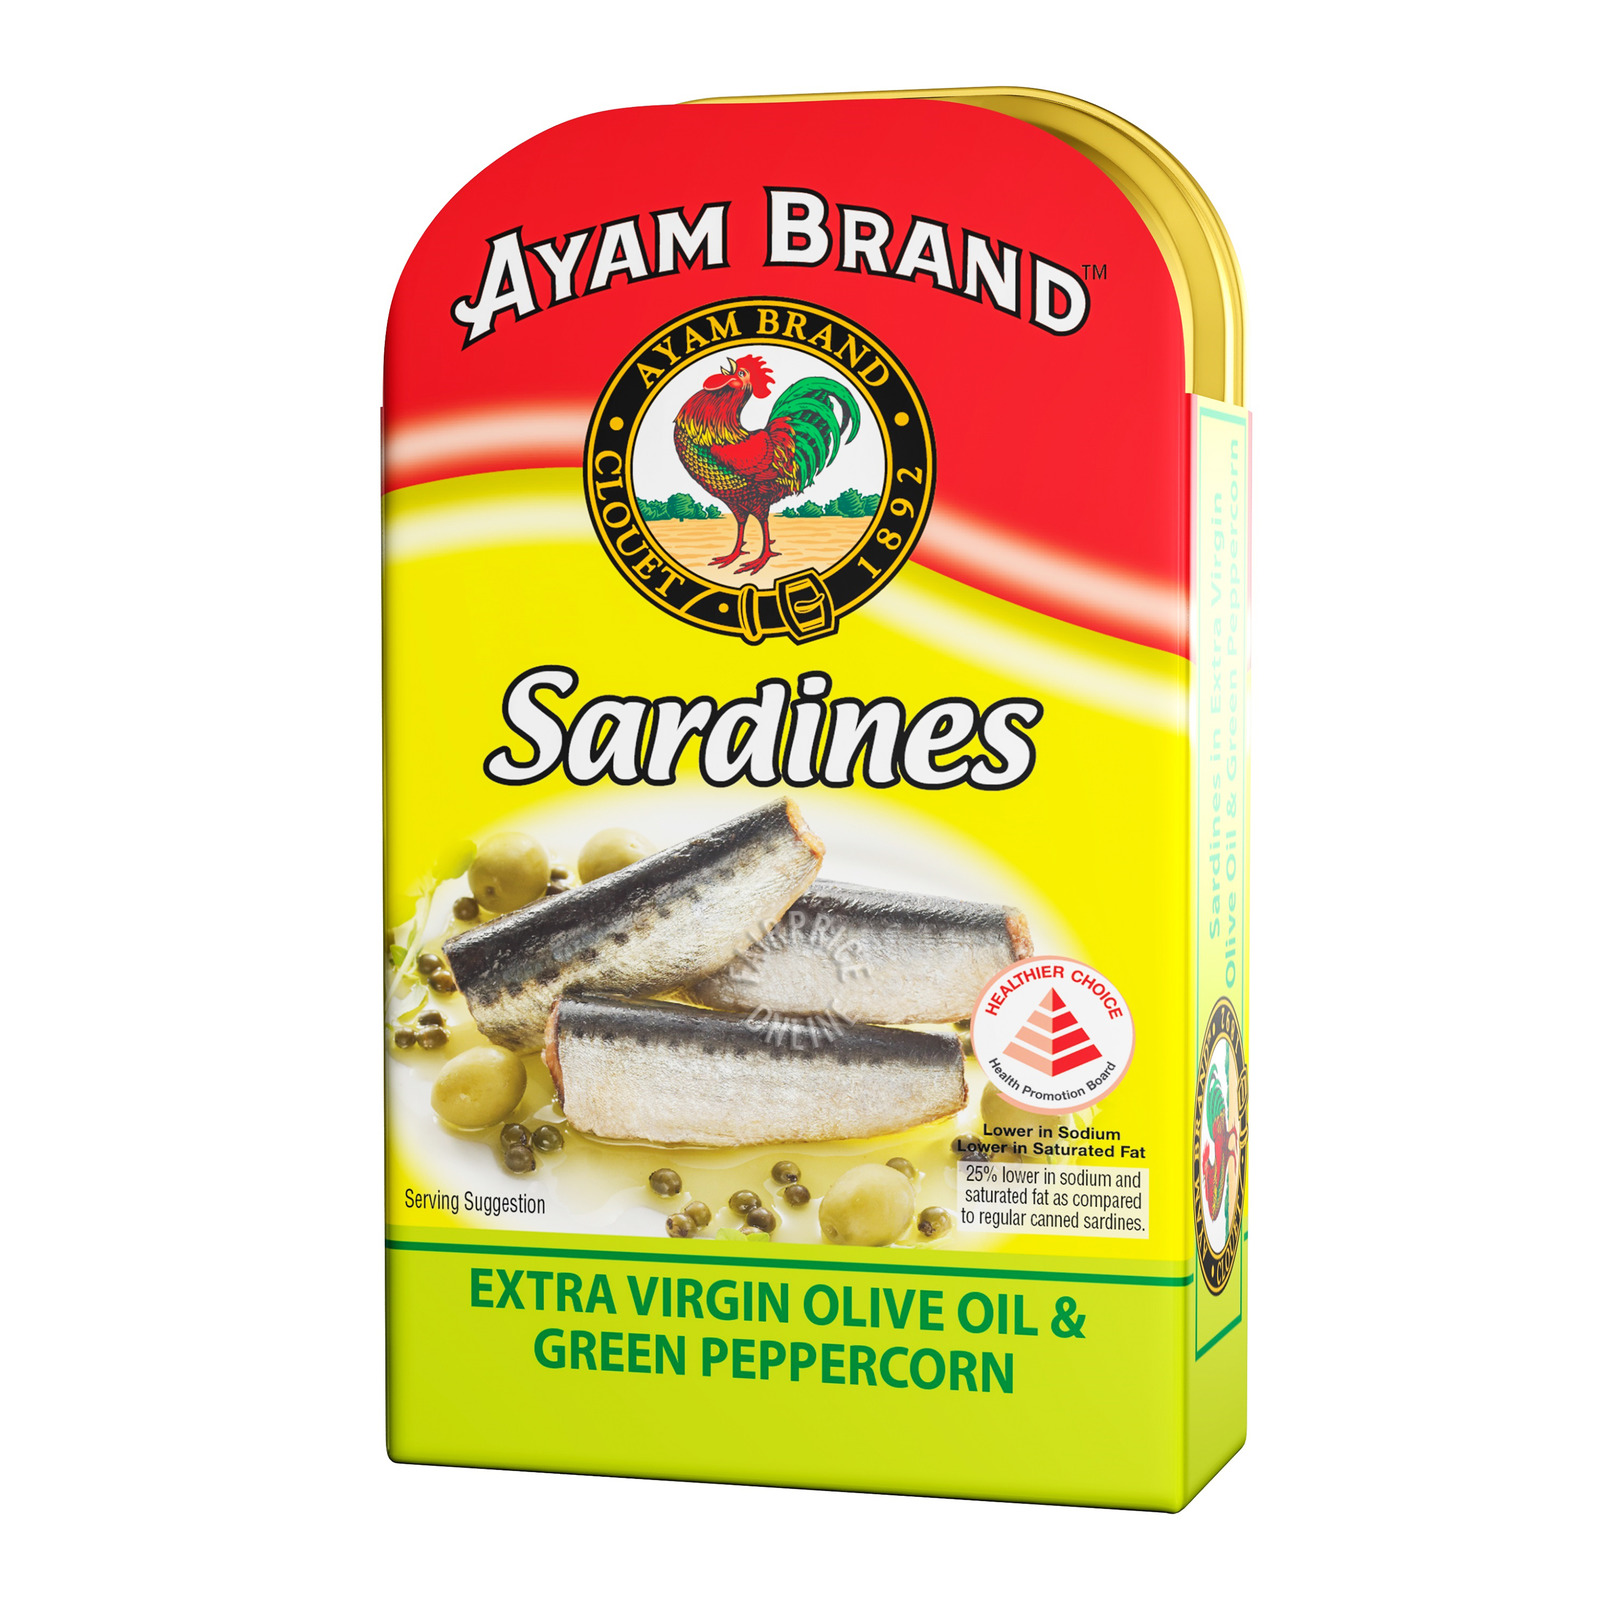 Ayam Brand Sardines - Extra Virgin Olive Oil & Green Peppercorn